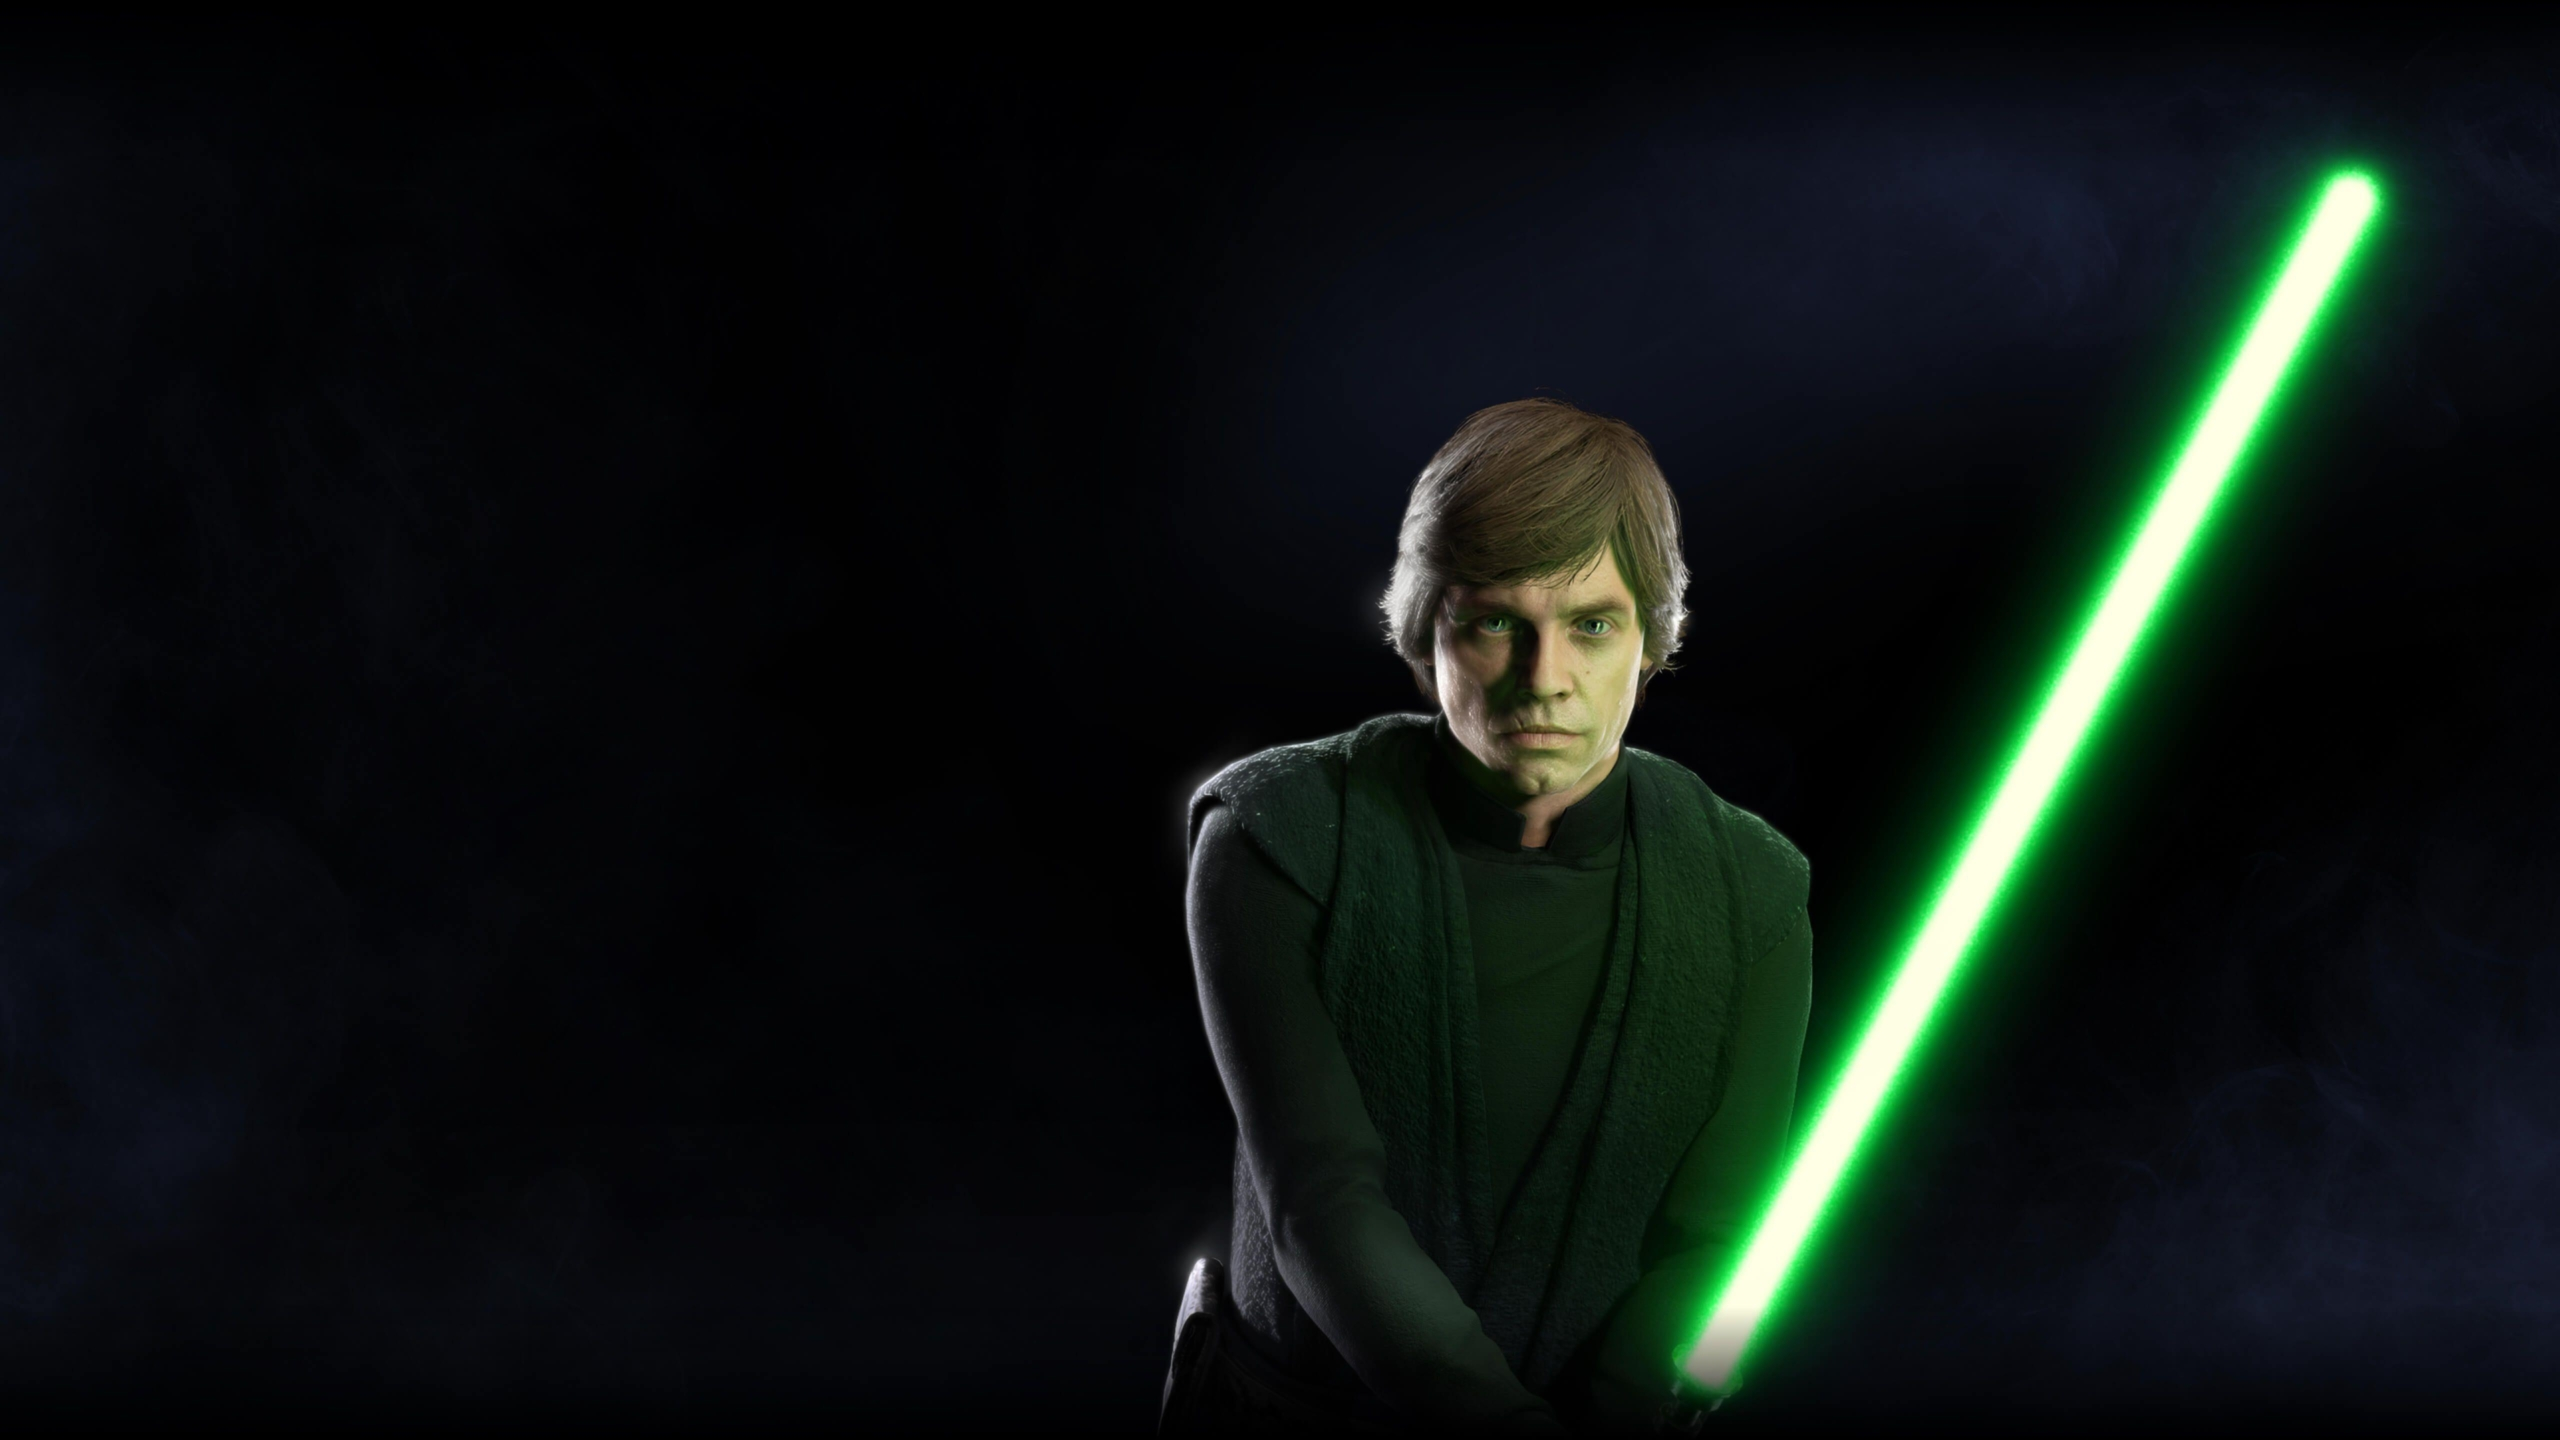 Finding Quality Luke Skywalker Picture designs